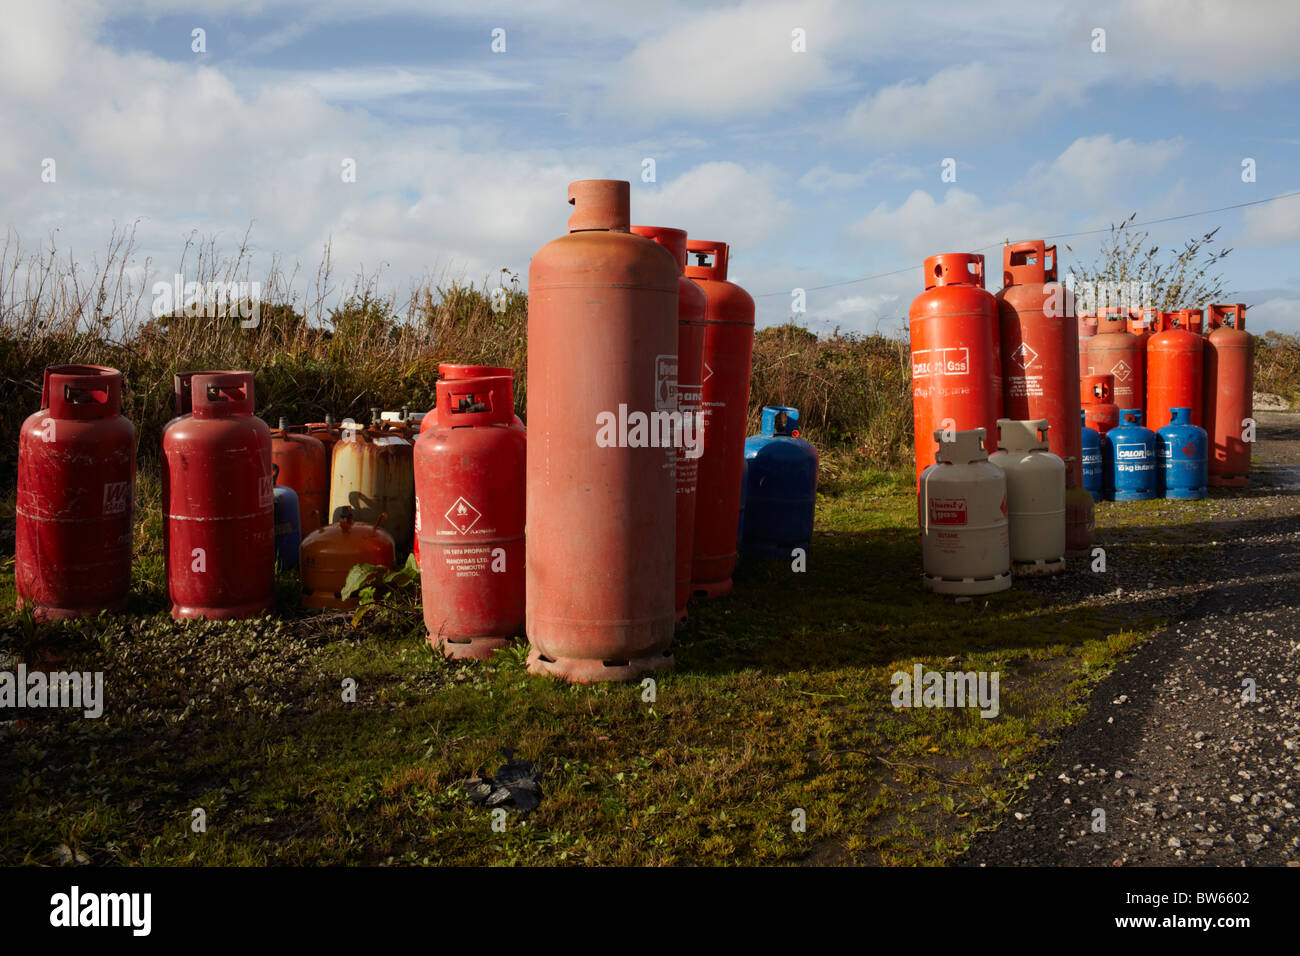 Gas canisters - Stock Image